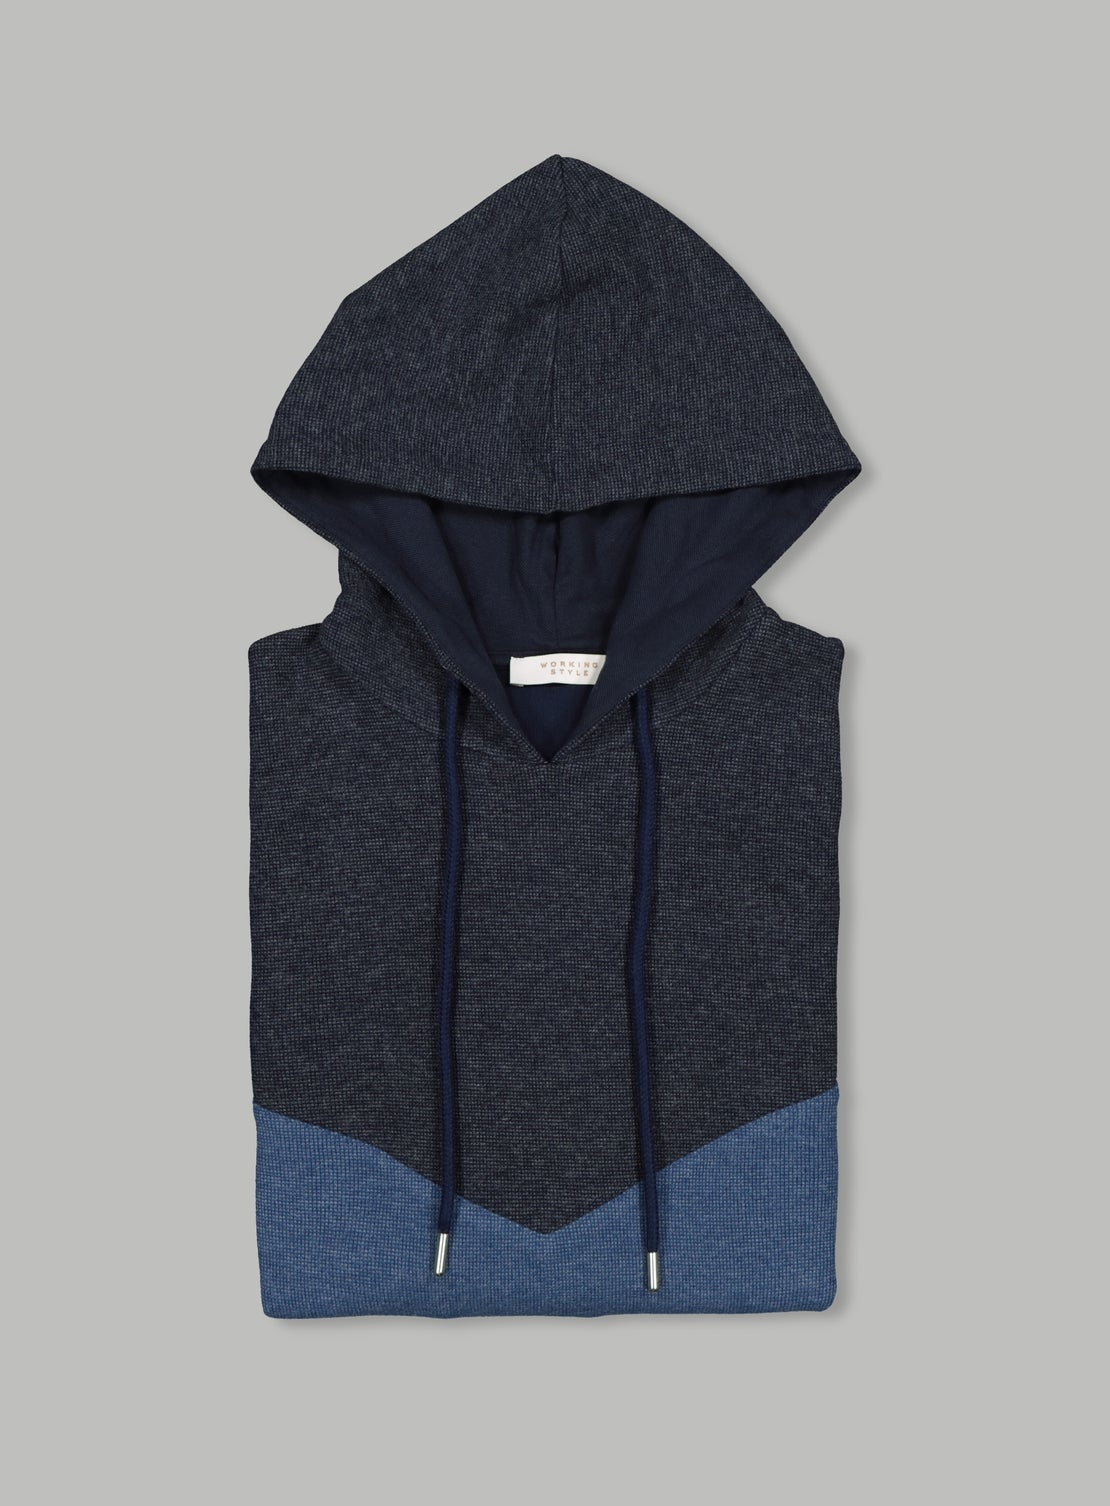 Daly Hooded Knit